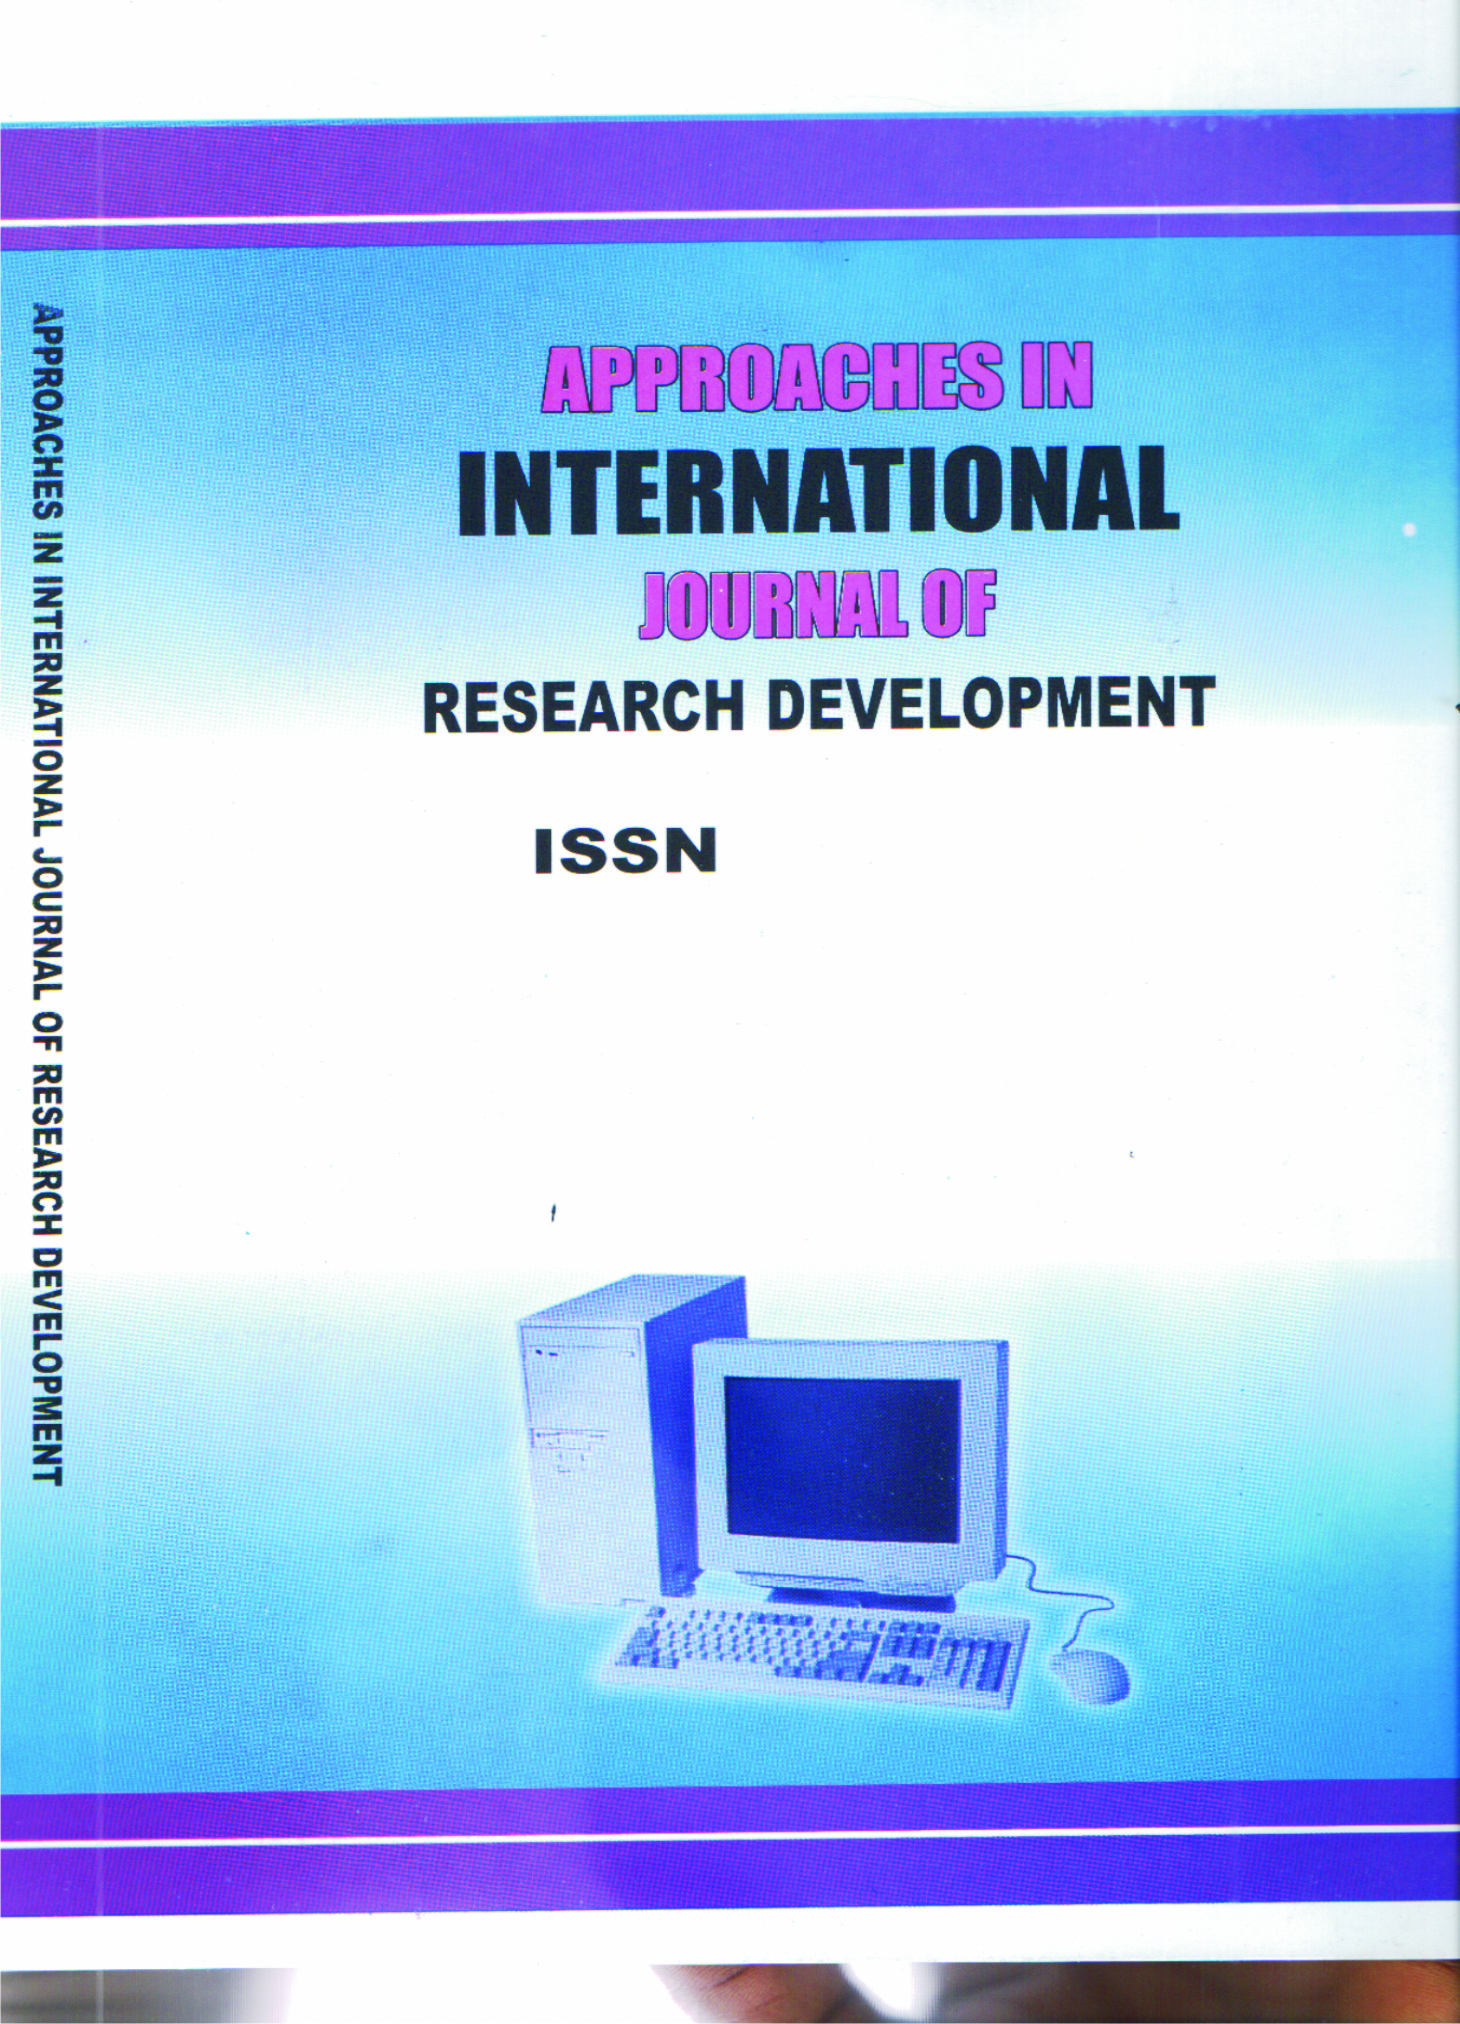 Multidisciplinary Journal of Research Development